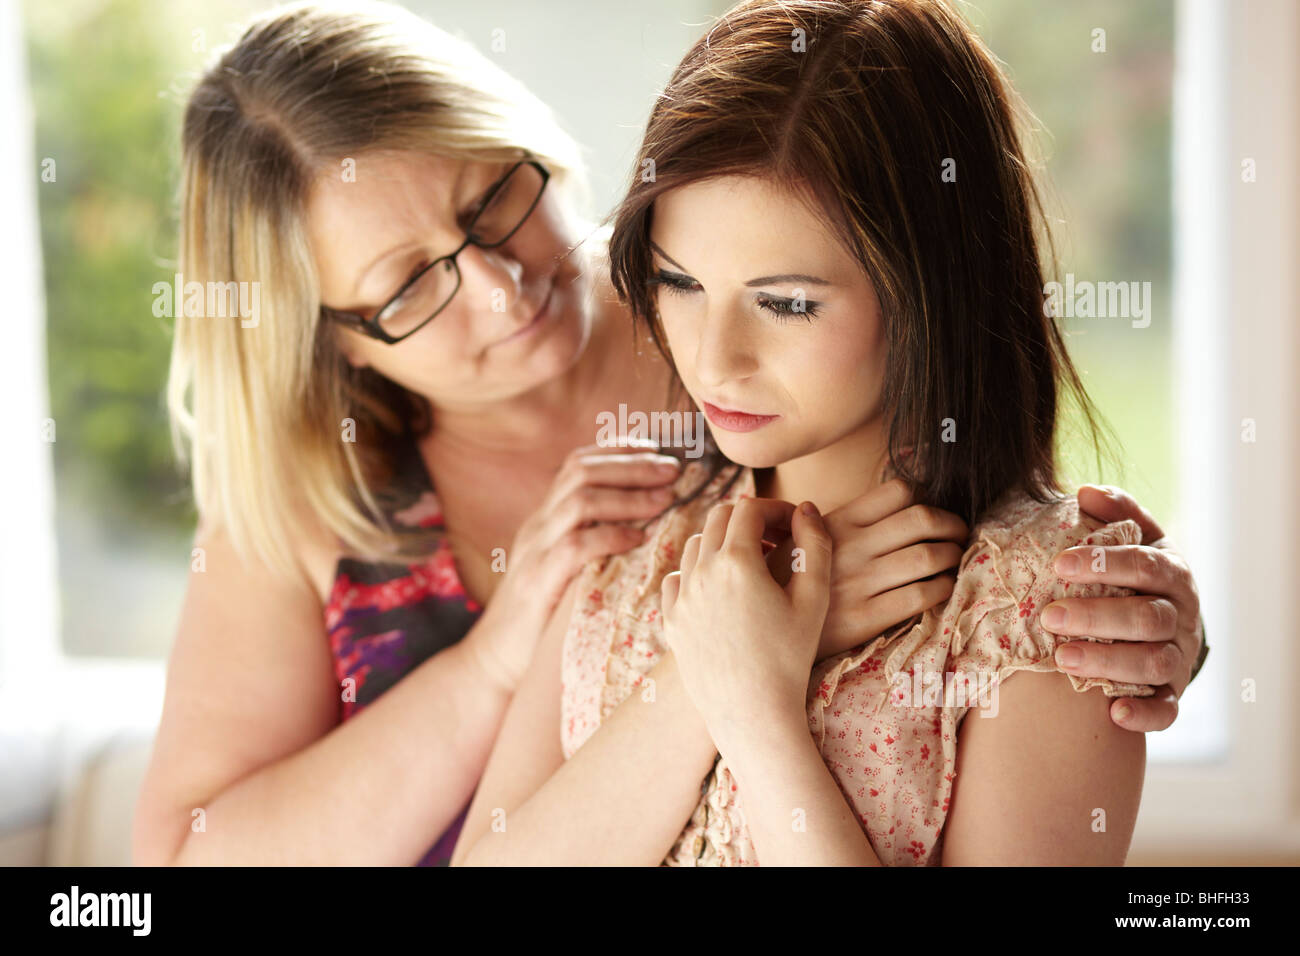 Mother consoling daughter - Stock Image